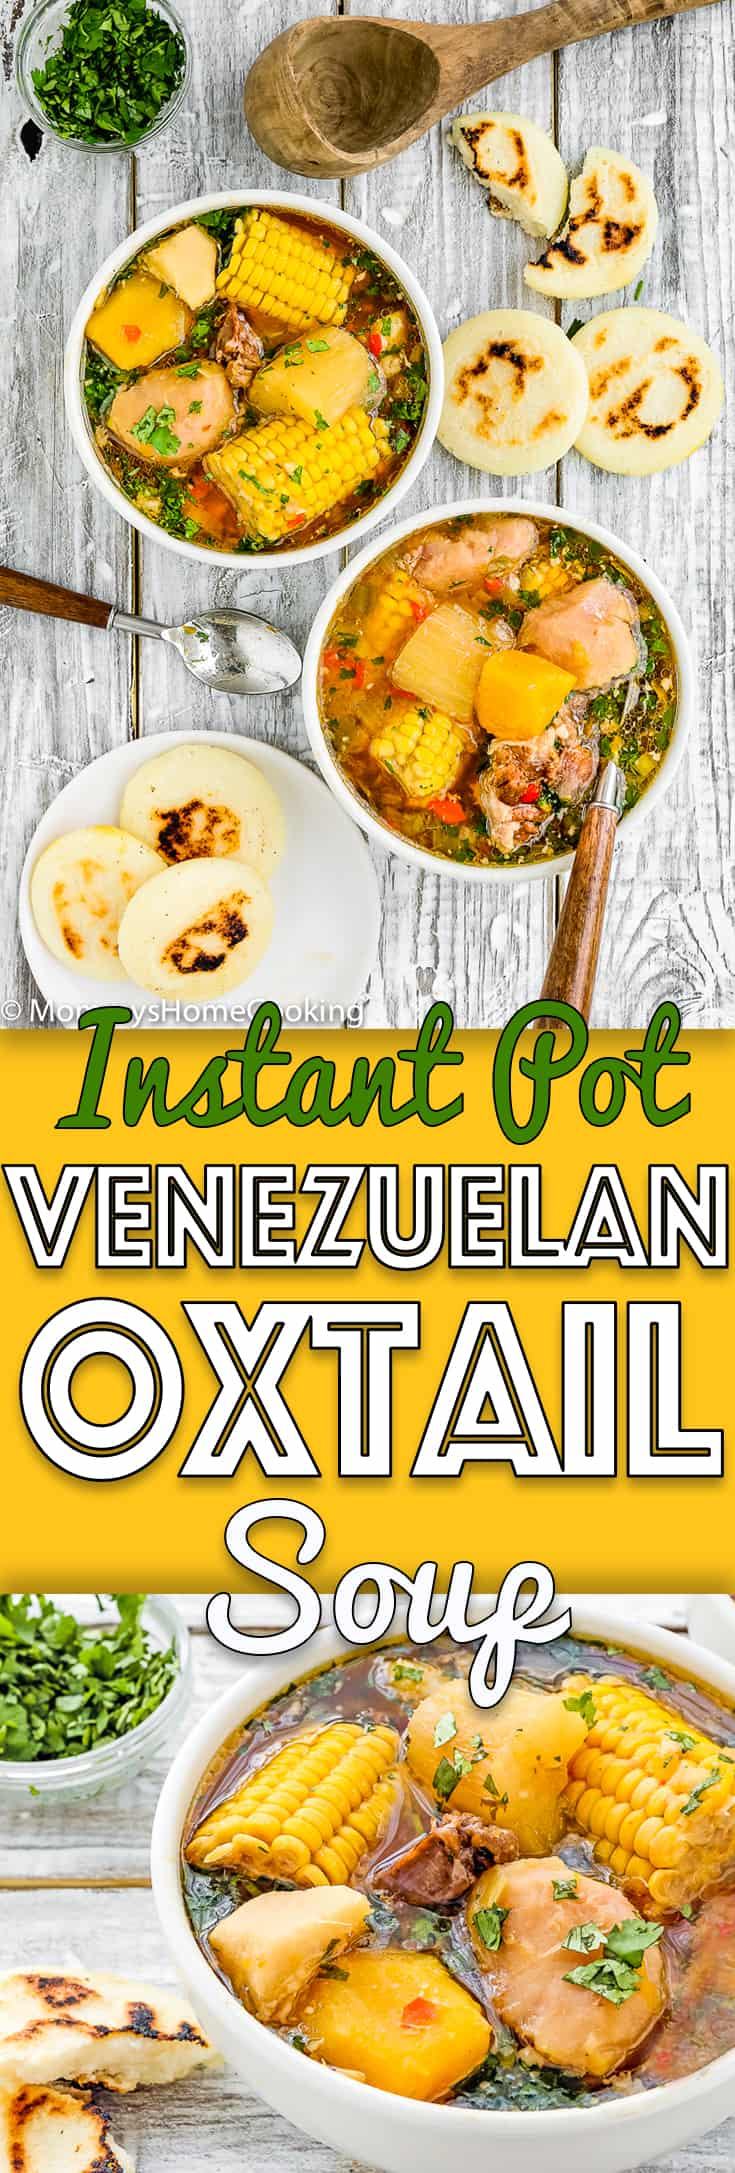 Try this Instant Pot Venezuelan Oxtail Soup! It's super easy to make and come together in just 1 hour. Known as a hangover cure, this soup is the perfect way to refuel and recharge after a long night of partying. http://mommyshomecooking.com